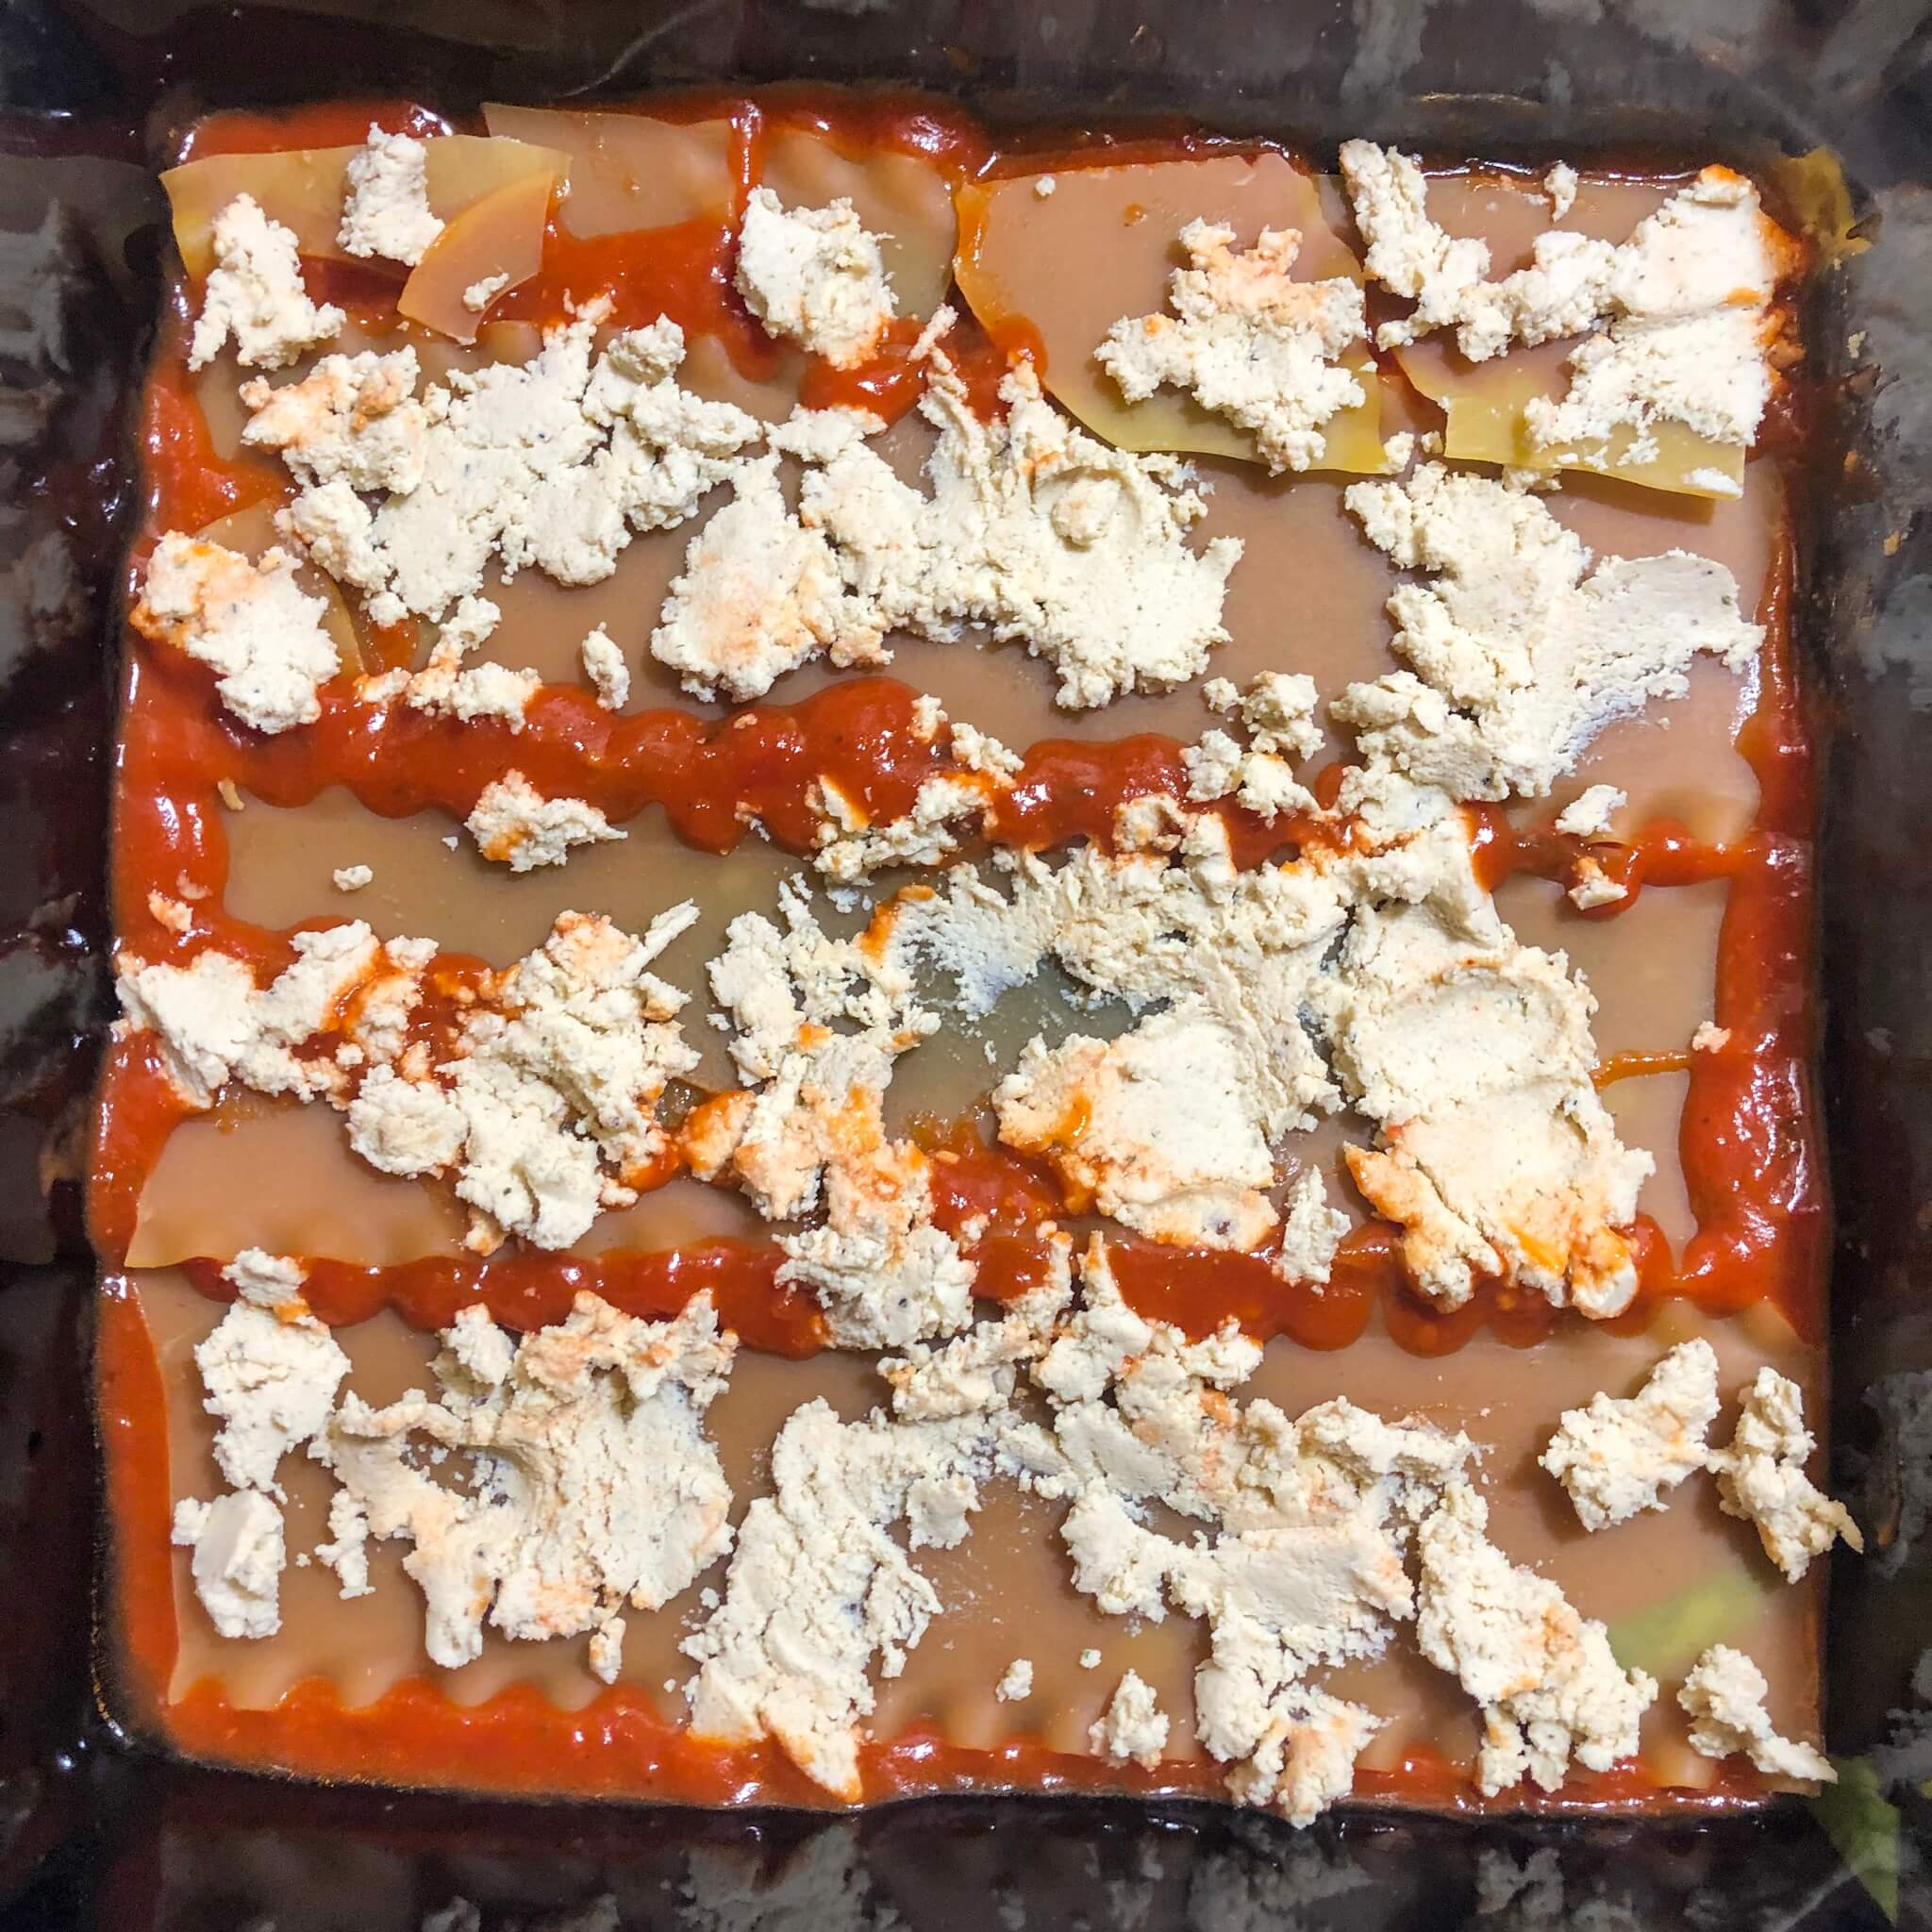 noodles with tofu ricotta lasagna recipe step 2